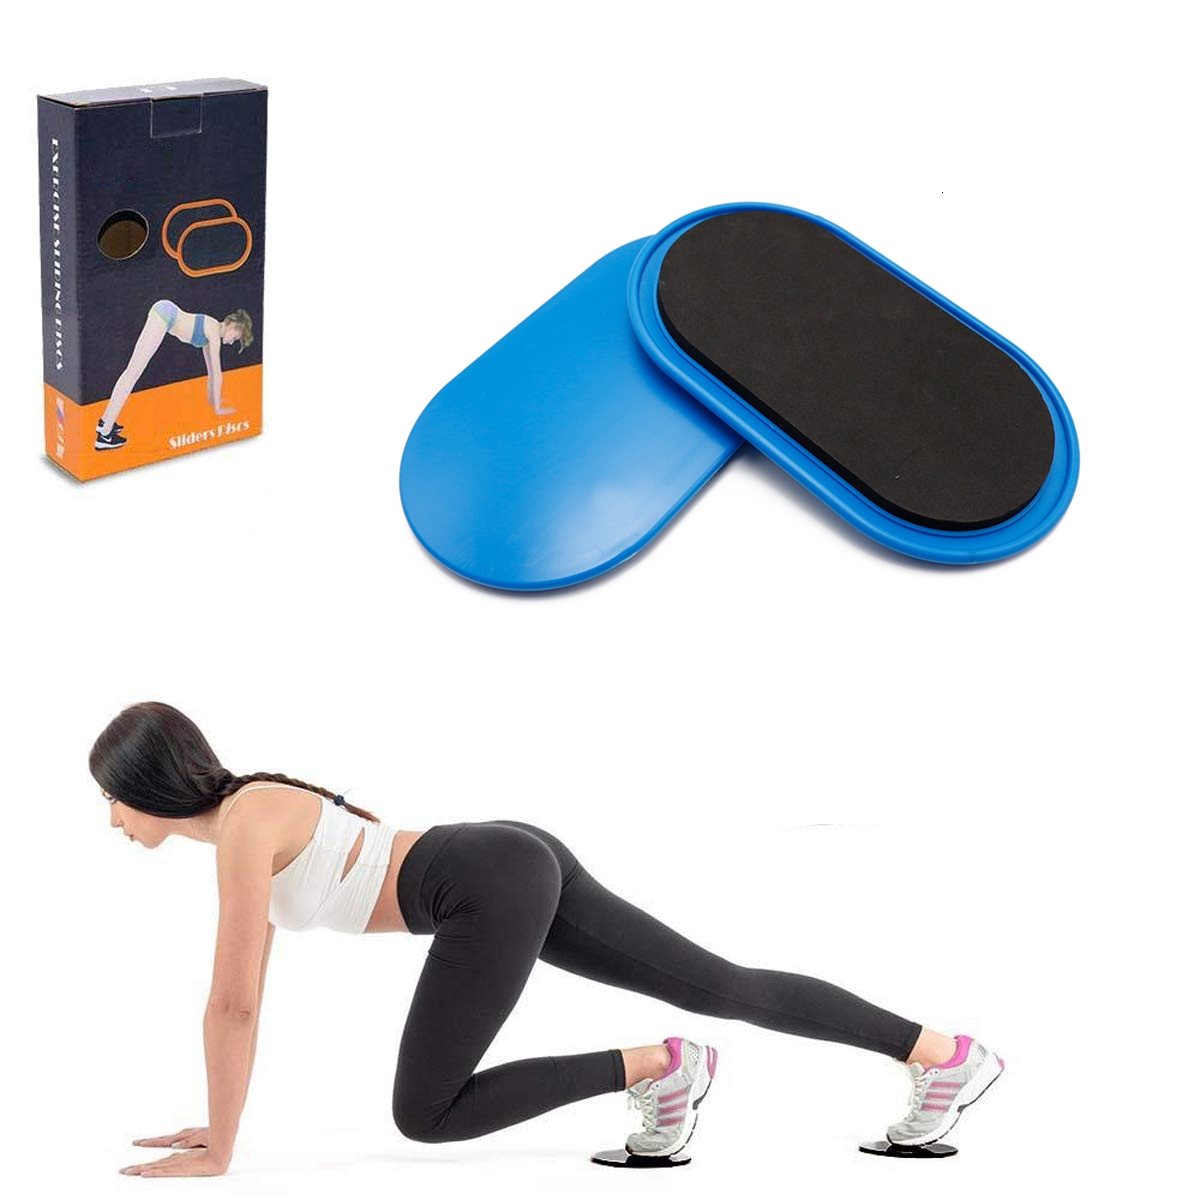 2PCS/Set Gliding Discs Slider Fitness Disc Exercise Sliding Abdomen Training Plate For Yoga Abs Butts Legs Workout Accessories image